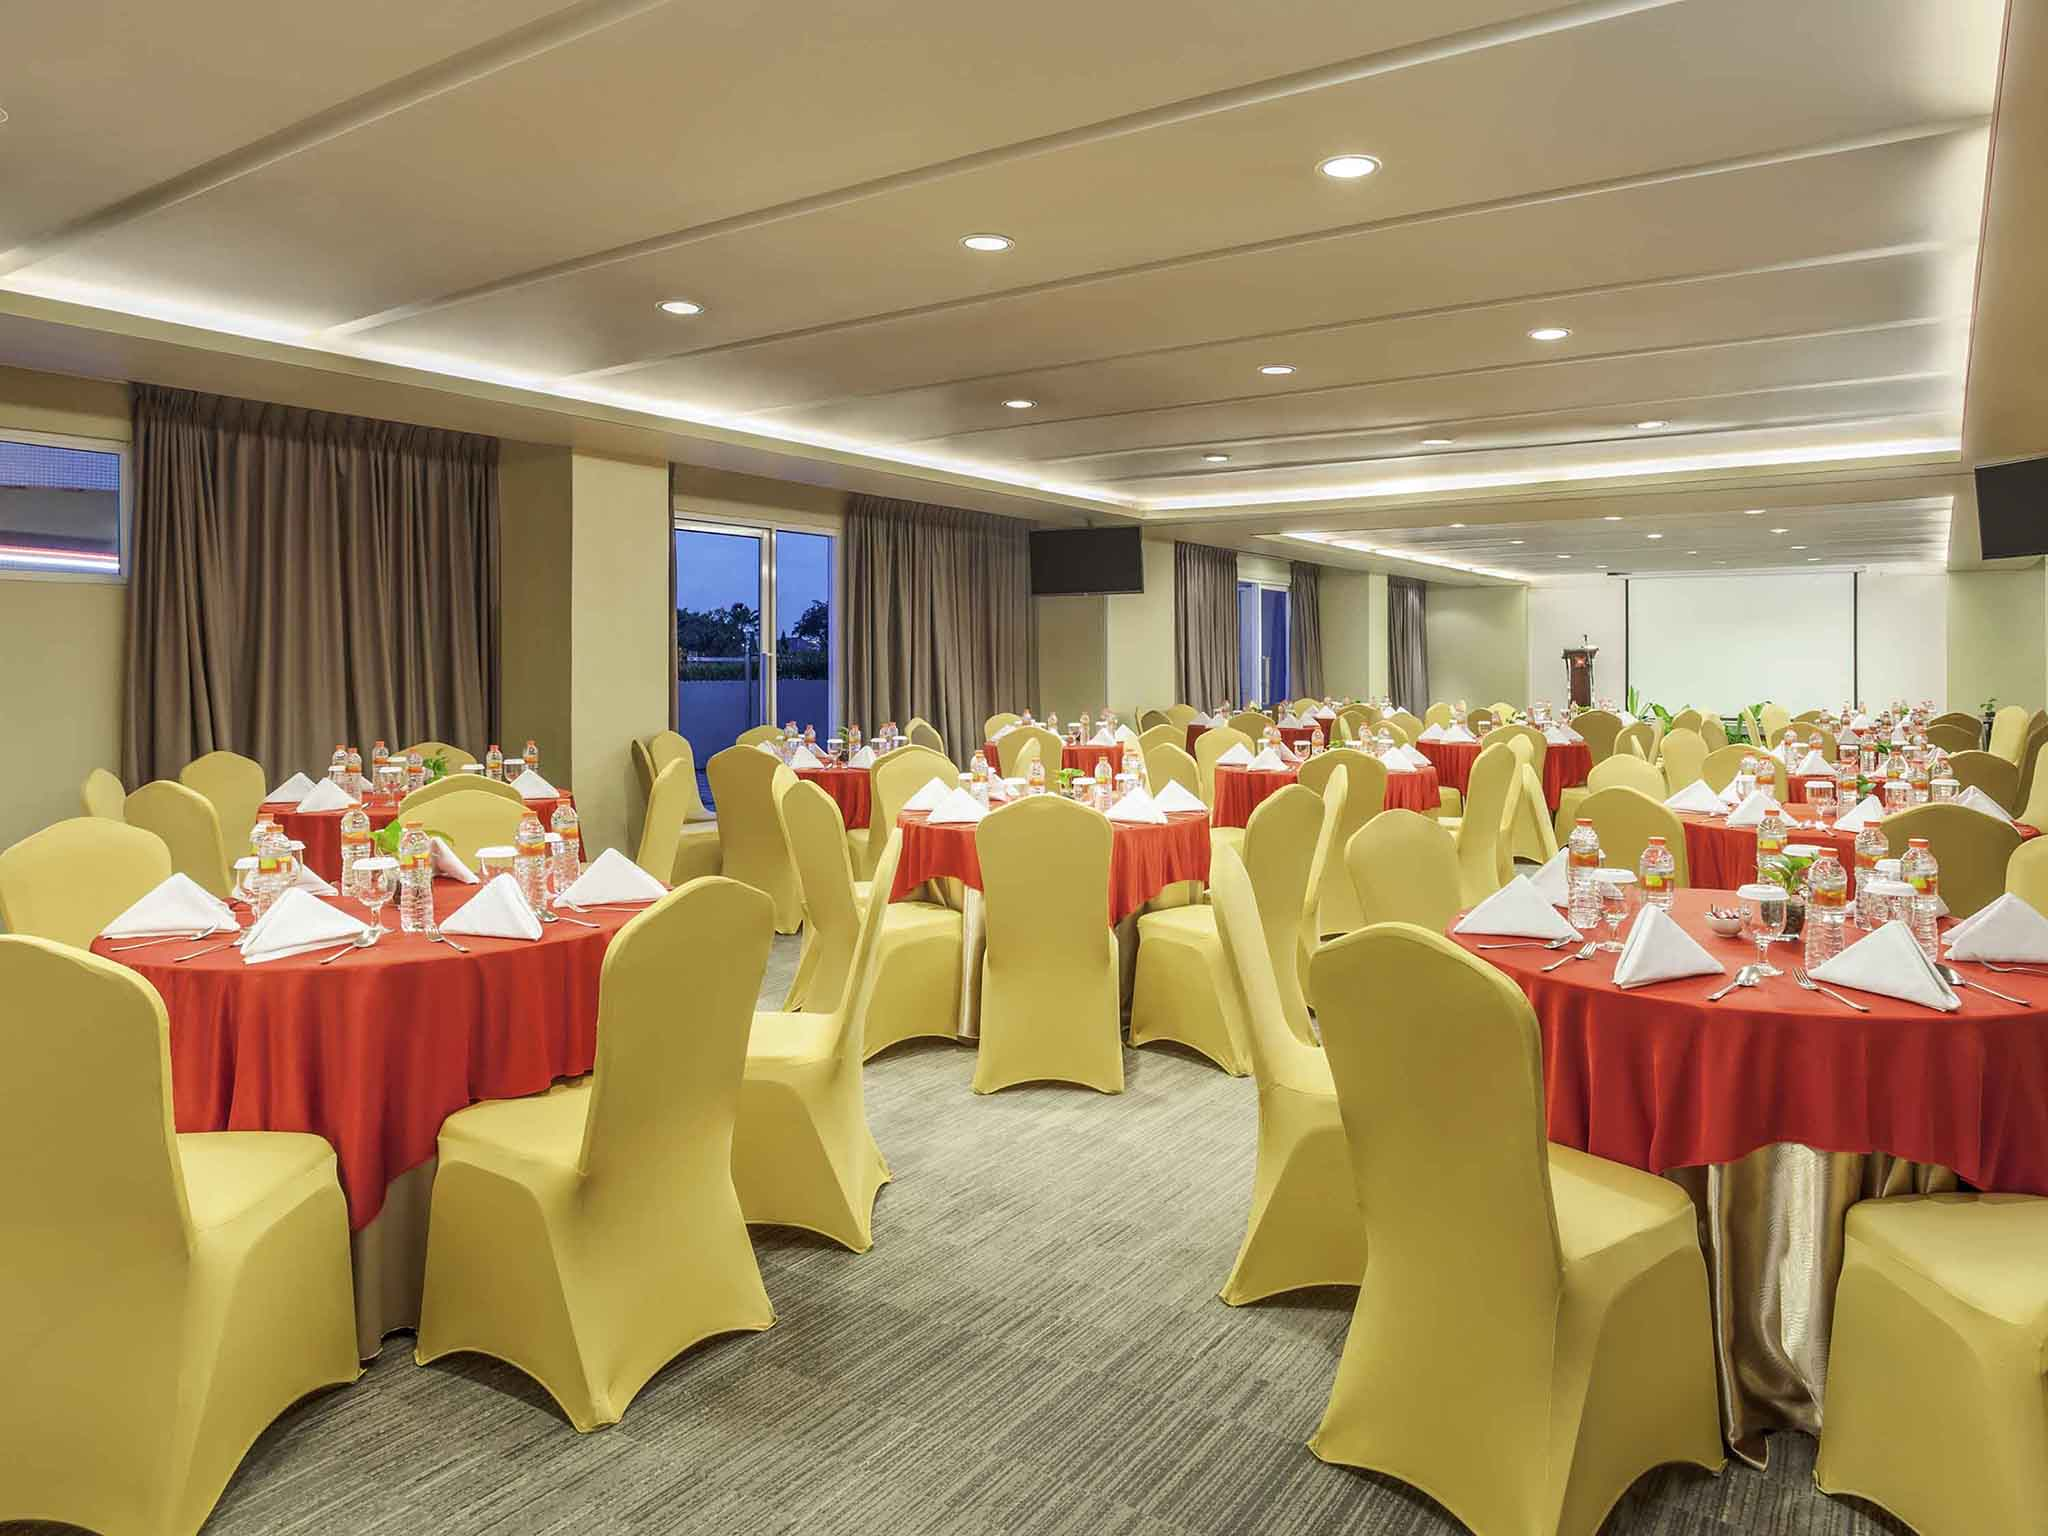 Hotel in surabaya ibis surabaya city center meetings and events ibis surabaya city center junglespirit Gallery